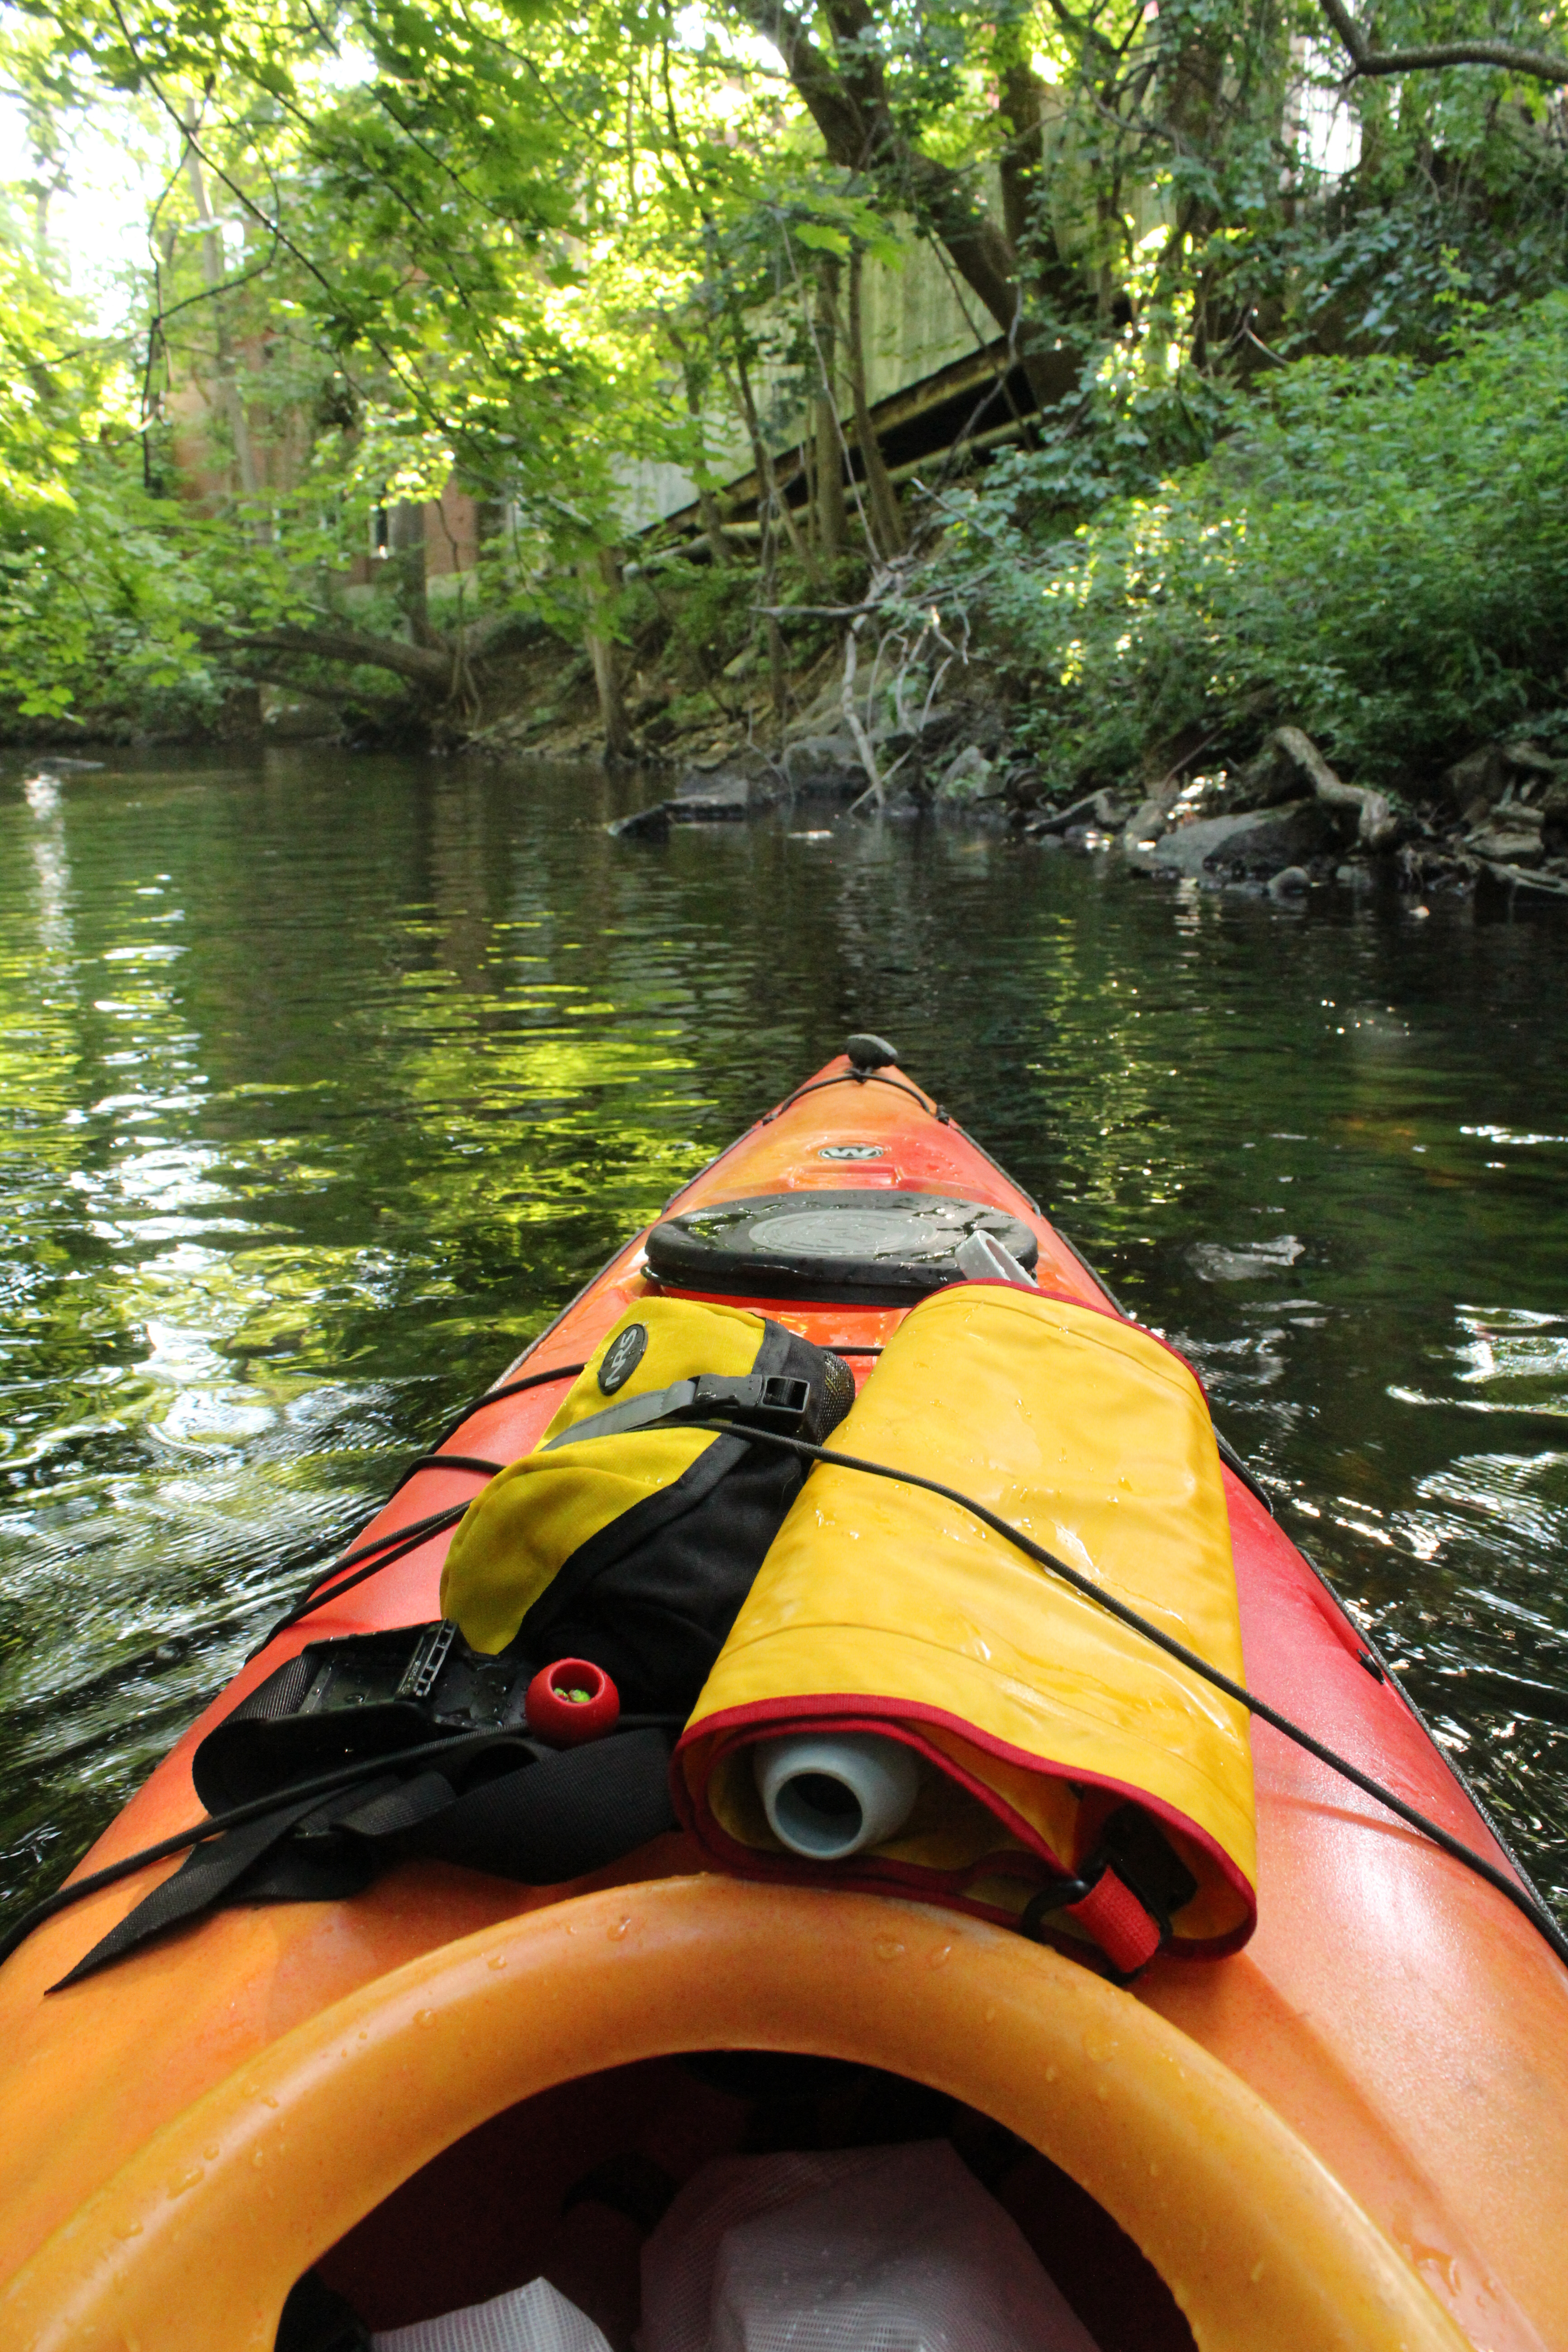 View from inside kayak while paddling up the river.